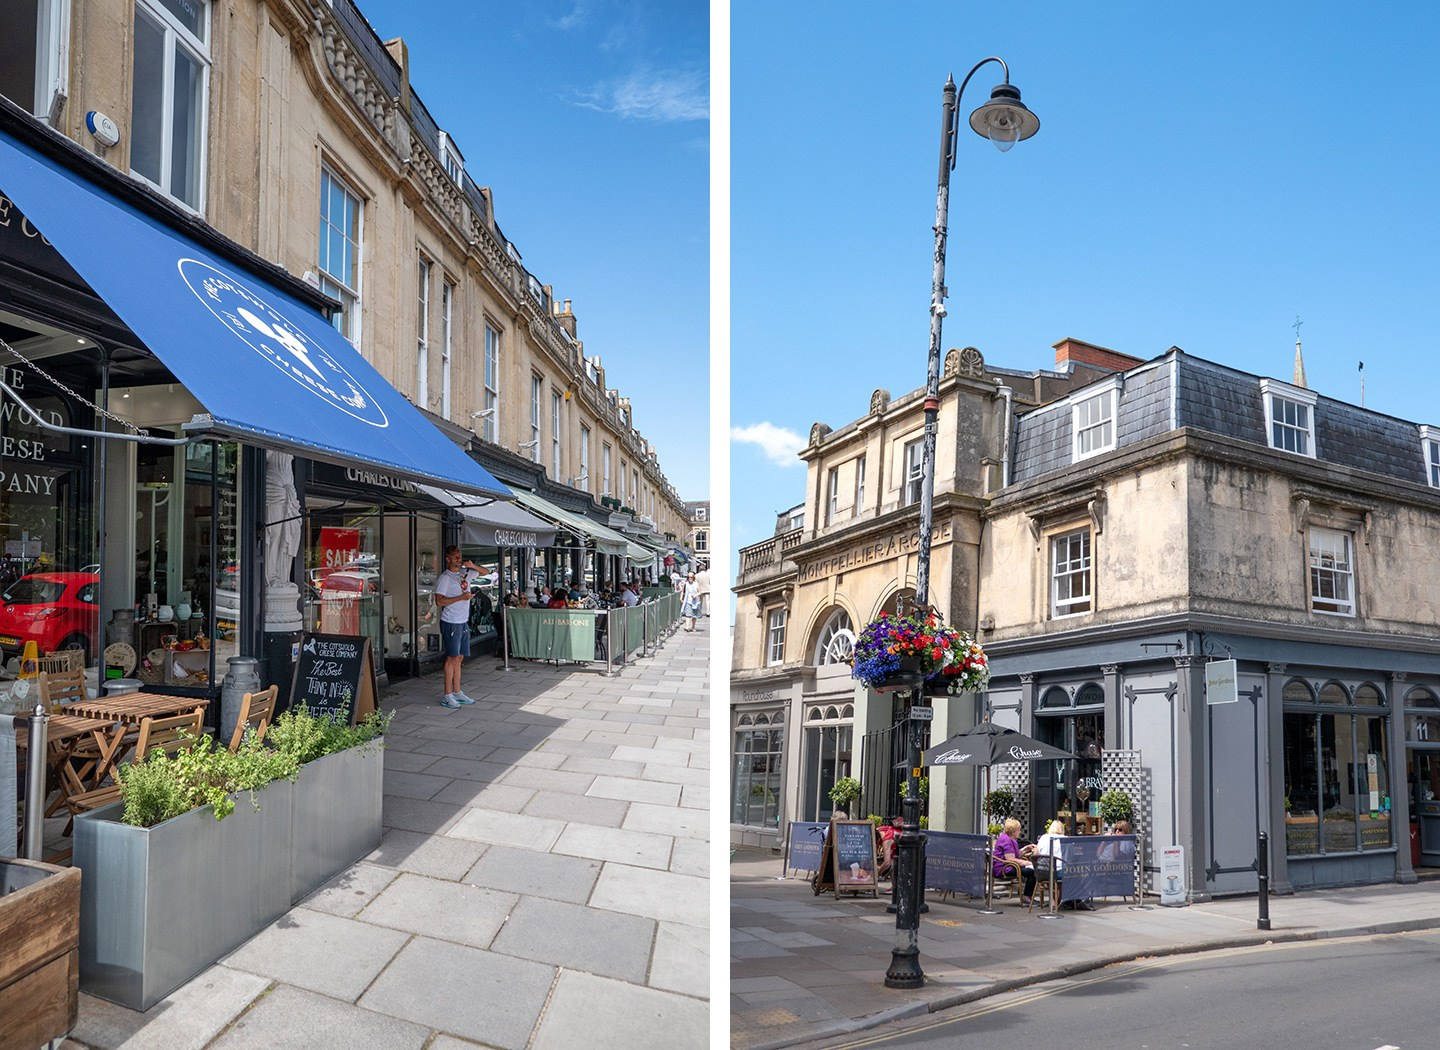 Shops in the Montpellier area of Cheltenham